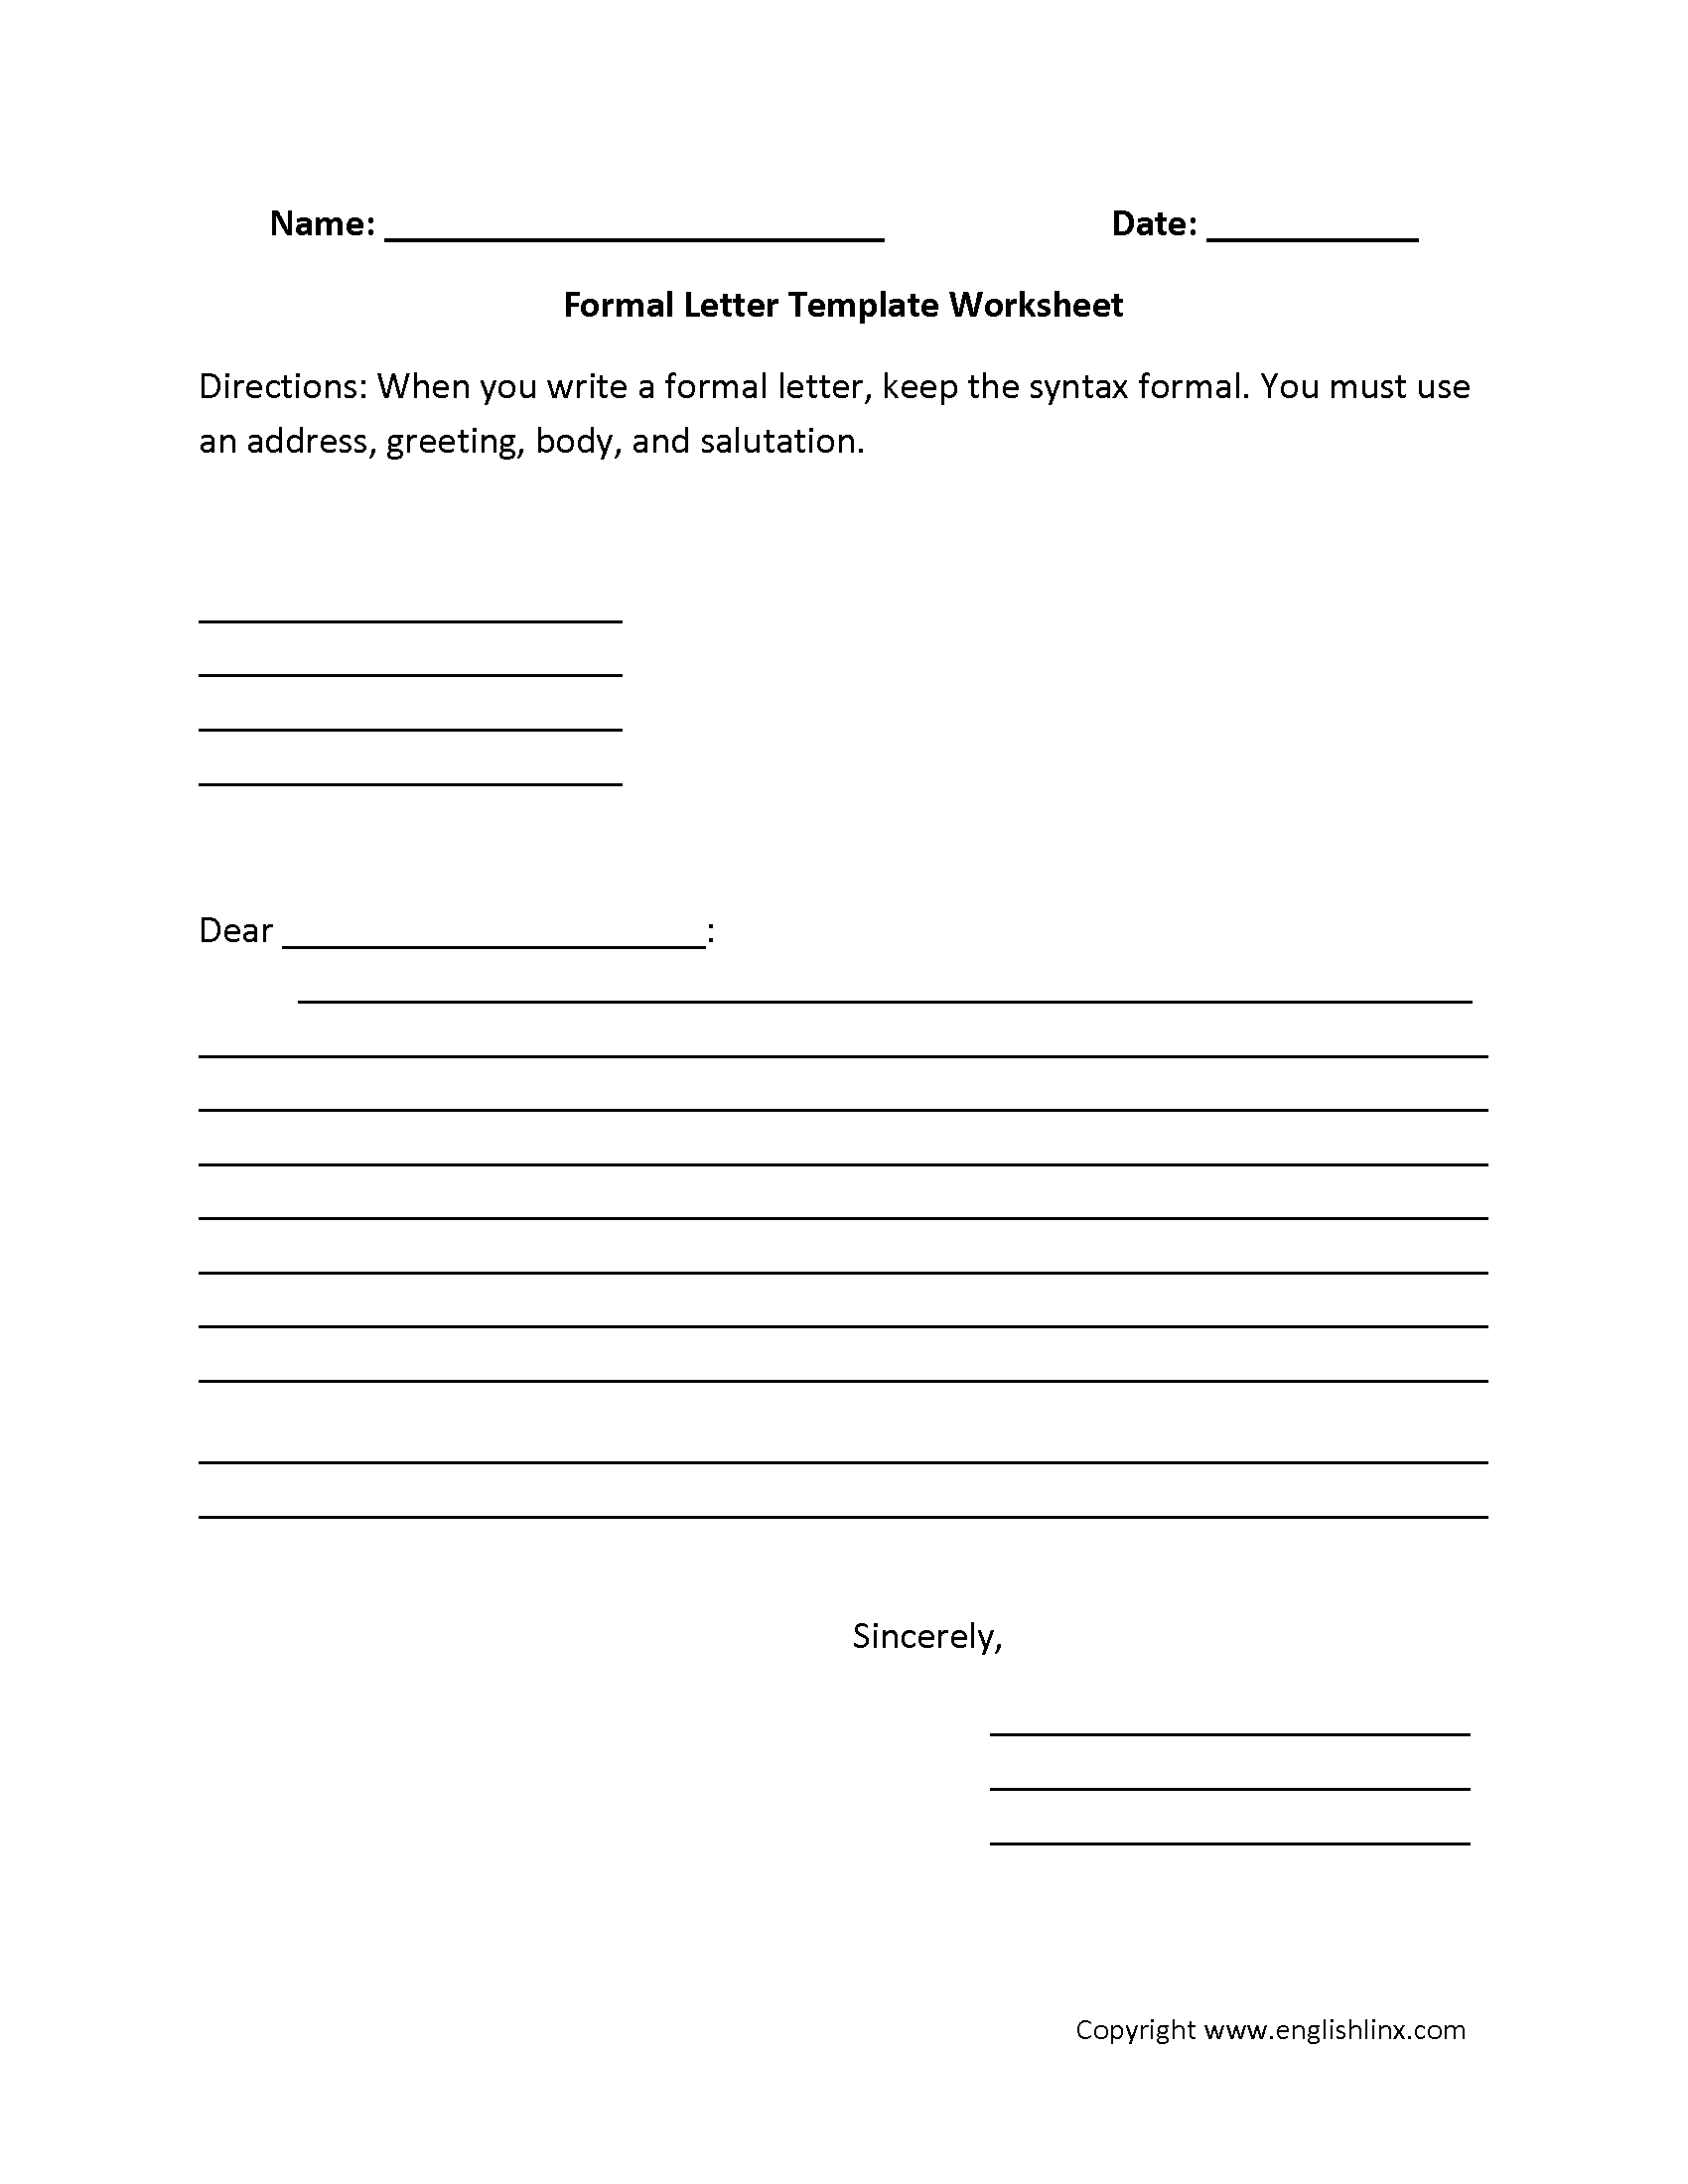 formal letter writing template juve cenitdelacabrera co